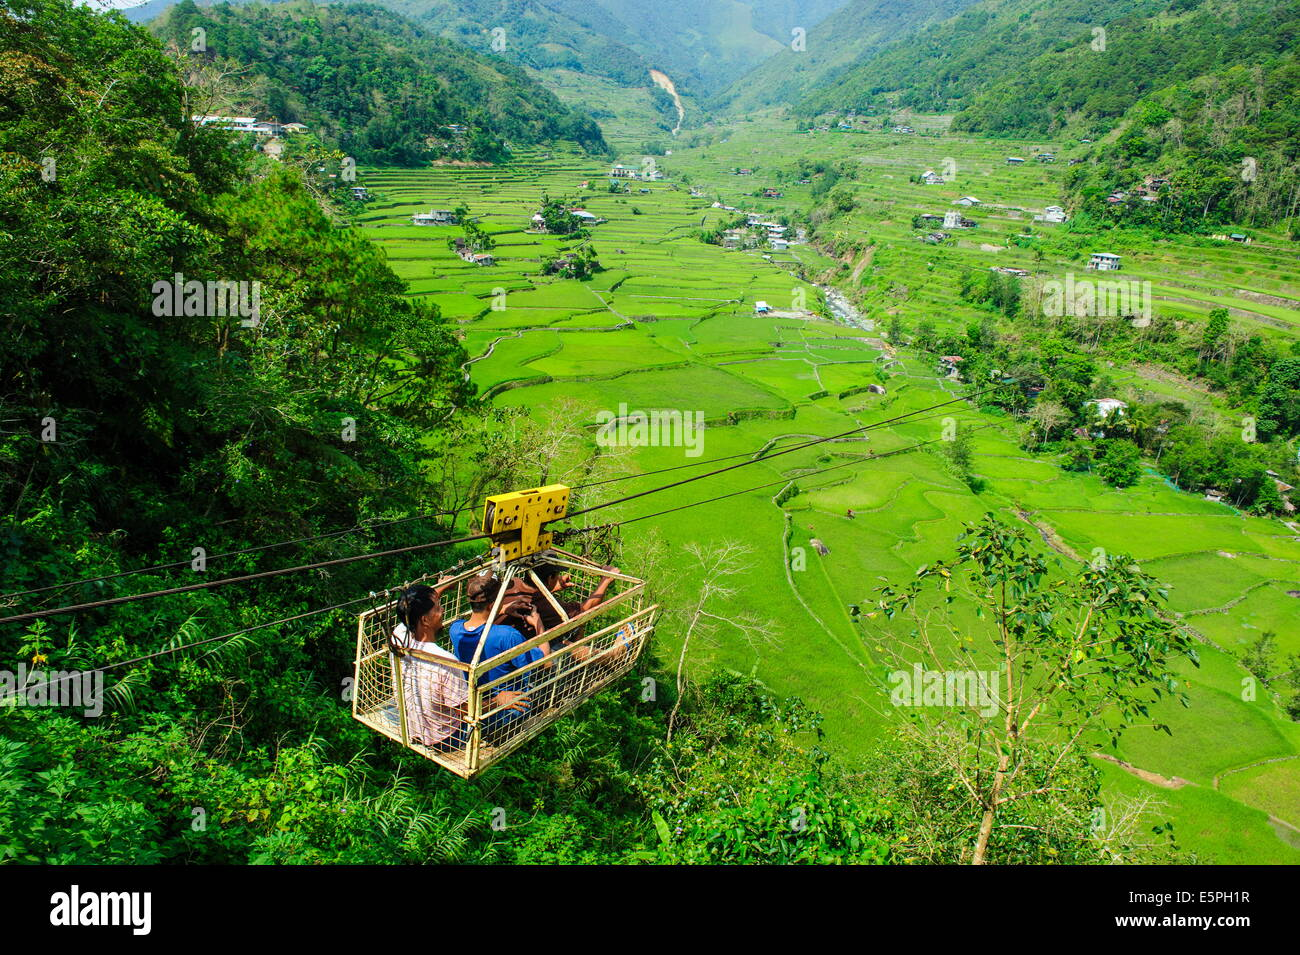 Cargo lift transporting people across the Hapao rice terraces, Banaue, UNESCO Site, Luzon, Philippines, Southeast - Stock Image